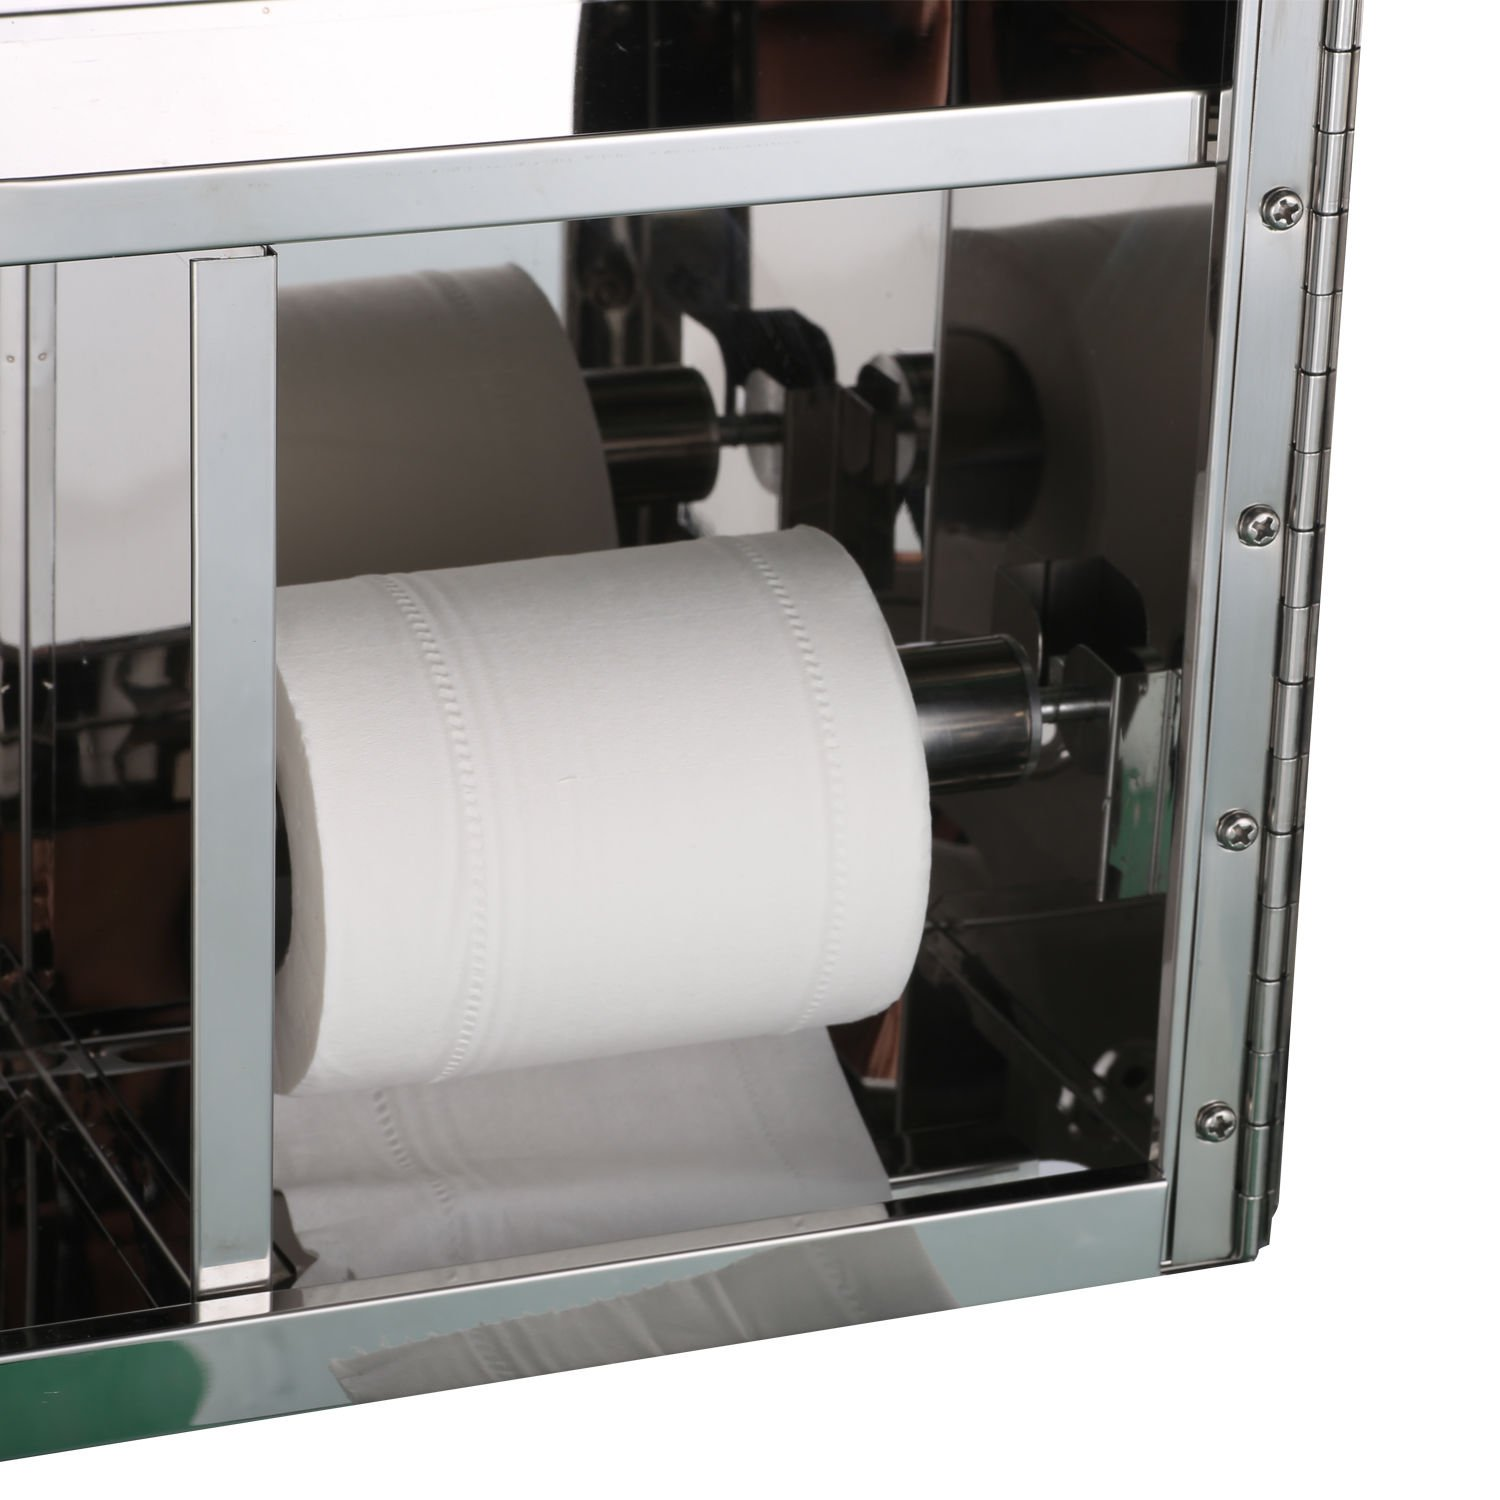 Generic O-8-O-4534-O oor Tis Suction Door Suction Steel Magnetic l Magne 16''x16'' Cabinet Mirror ainless Tissue Box rror To Toilet Stainless NV_1008004534-TYQFUS32